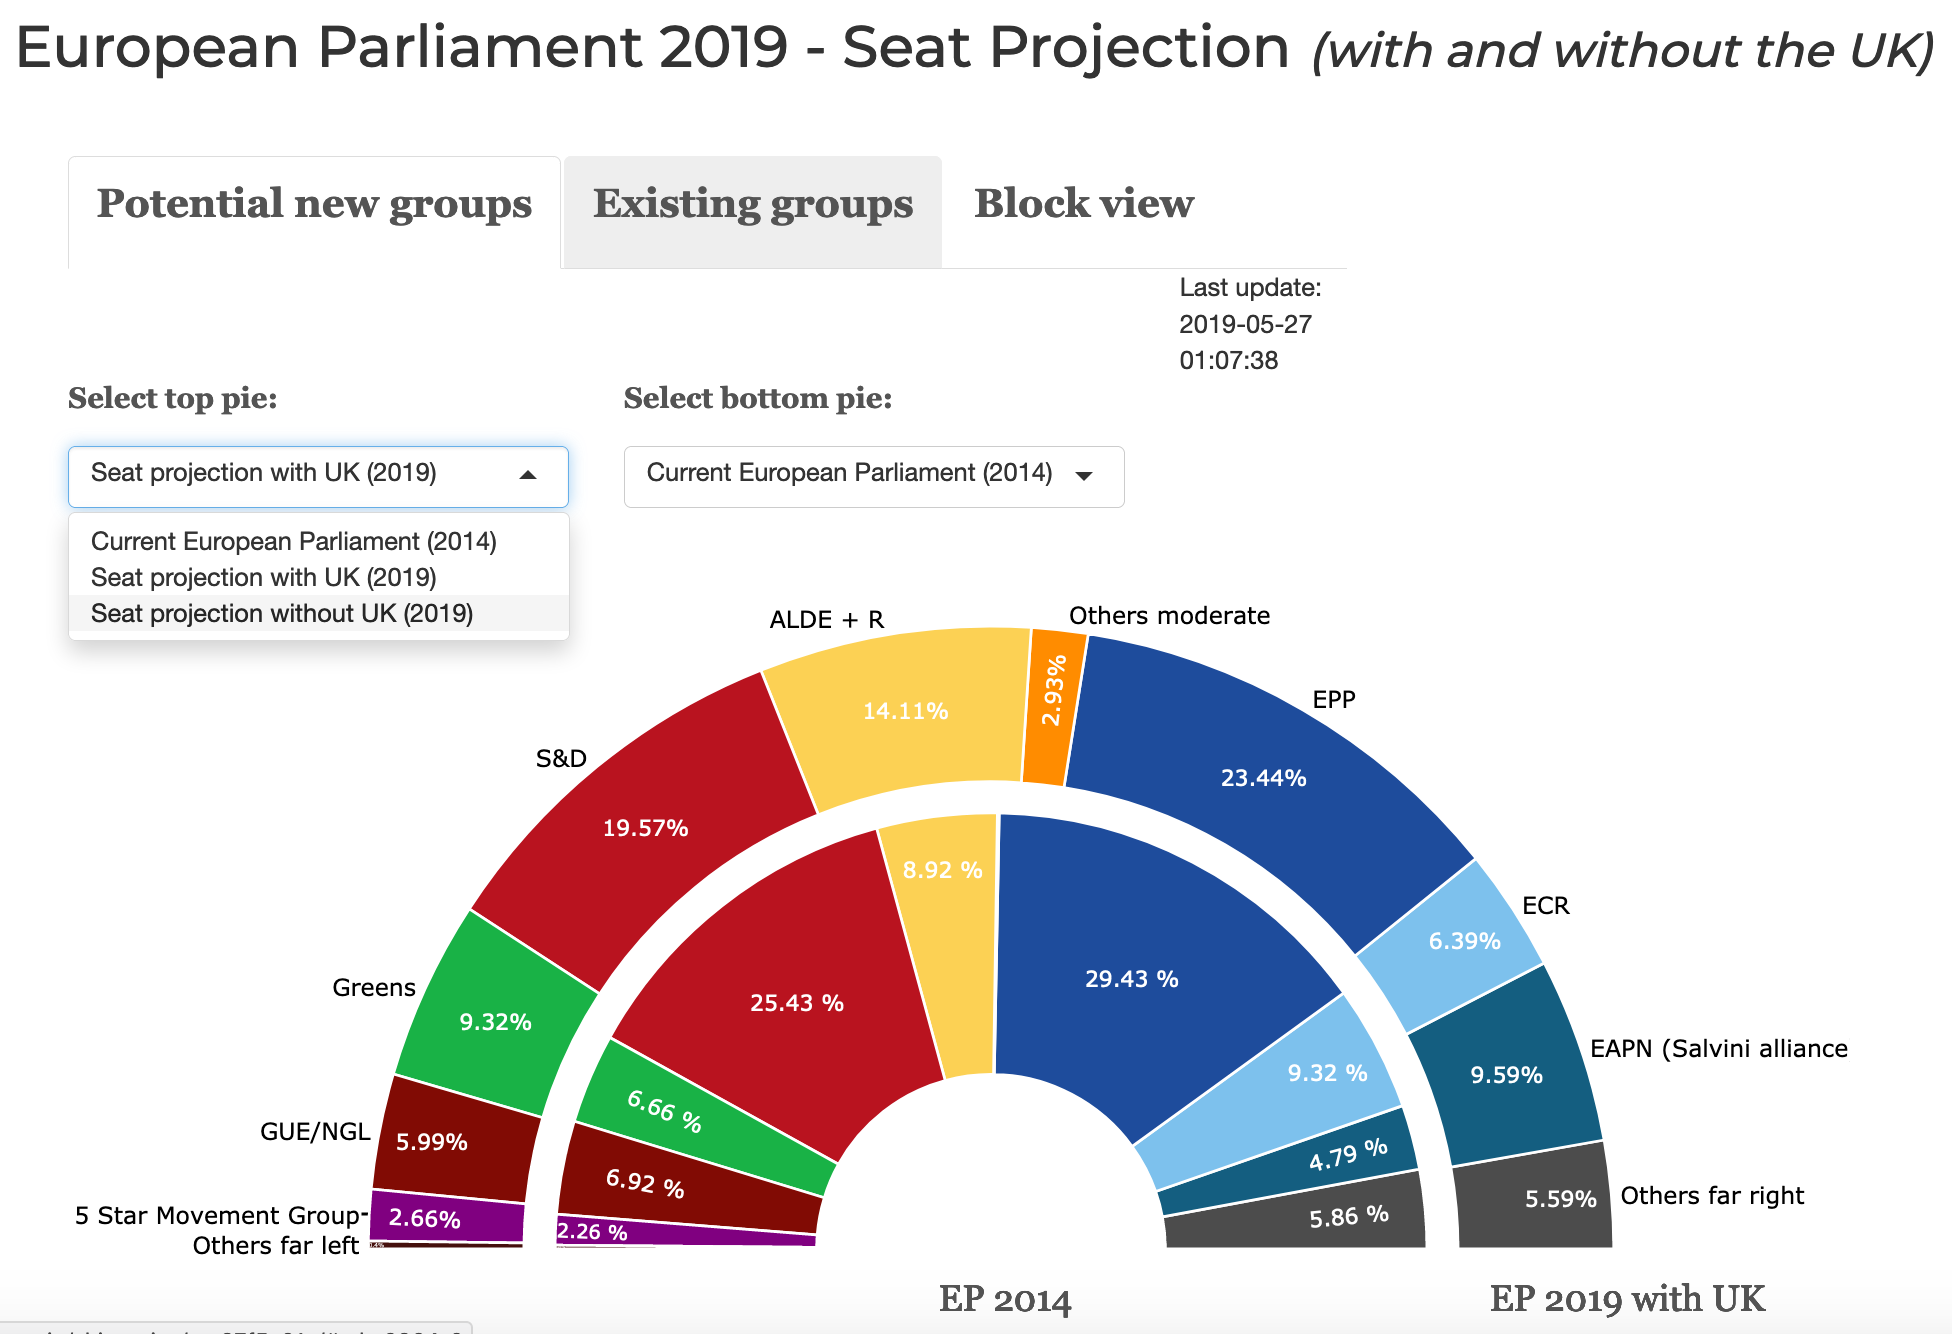 EP2019 Seat Projections R Shiny